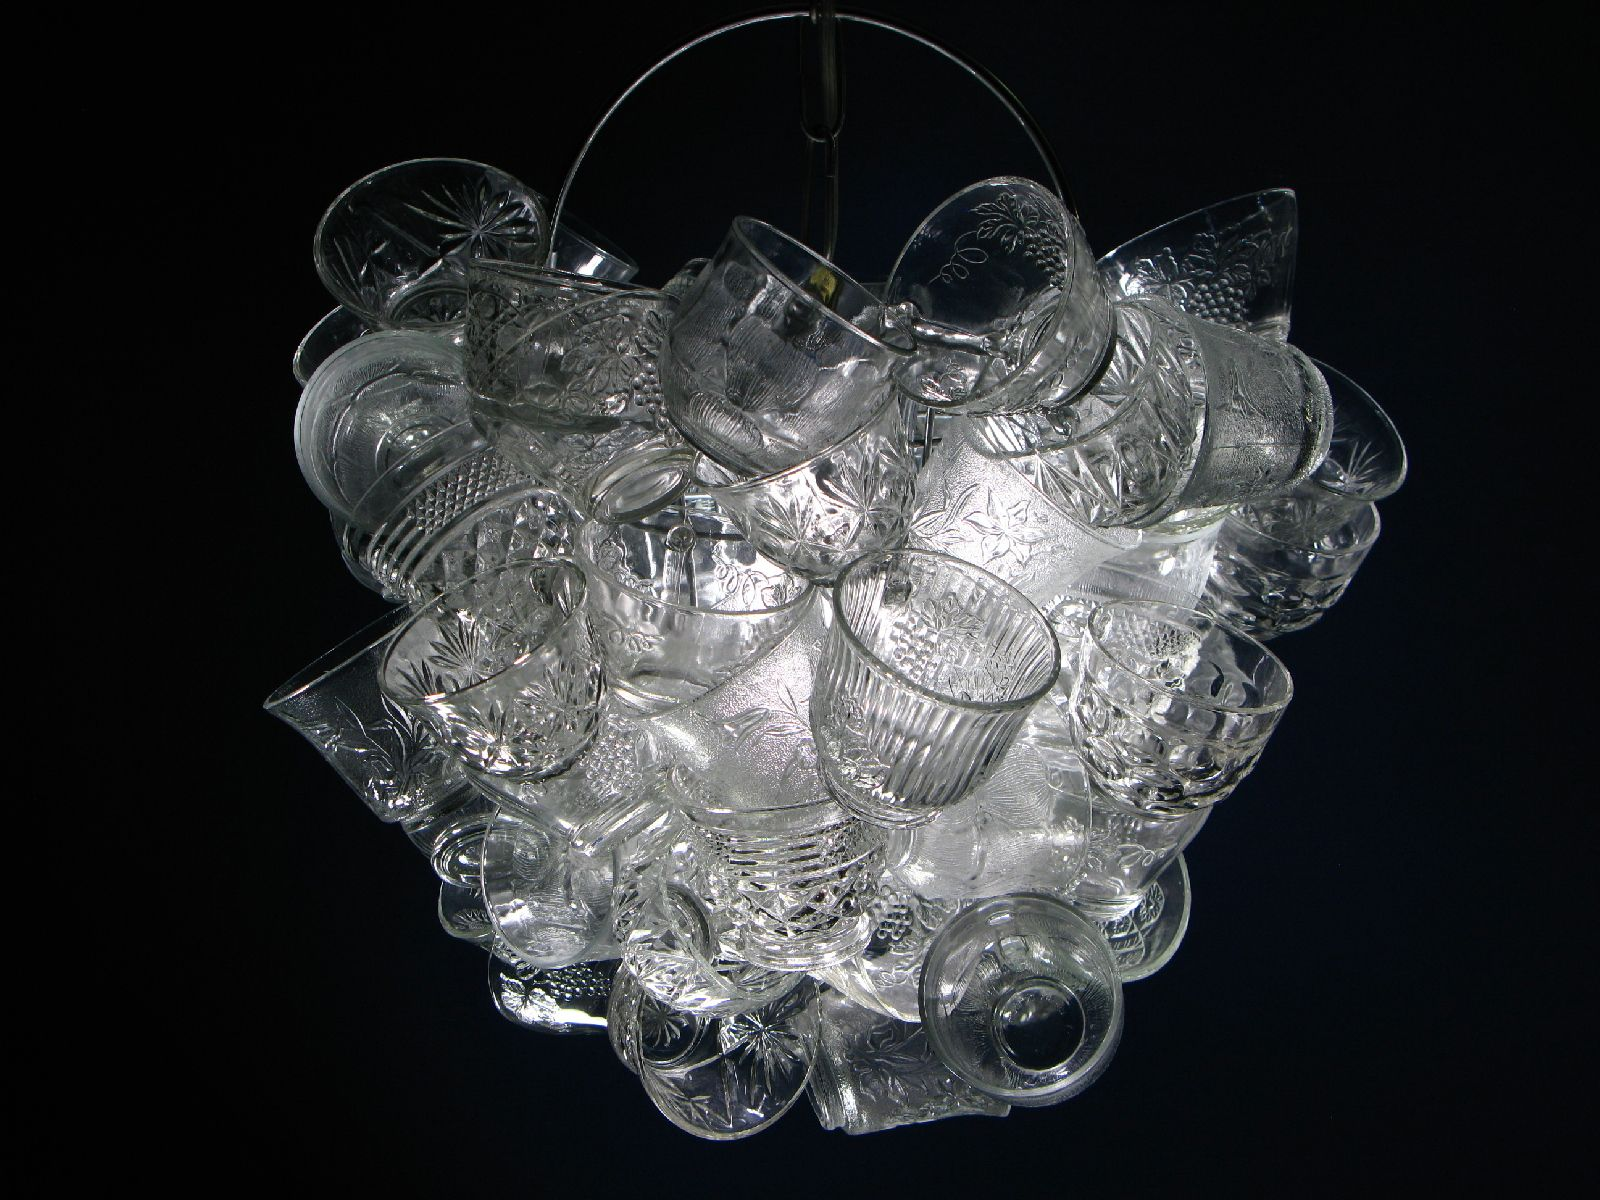 Chandelier made of punch cups decormaniac pinterest chandelier made of punch cups arubaitofo Choice Image